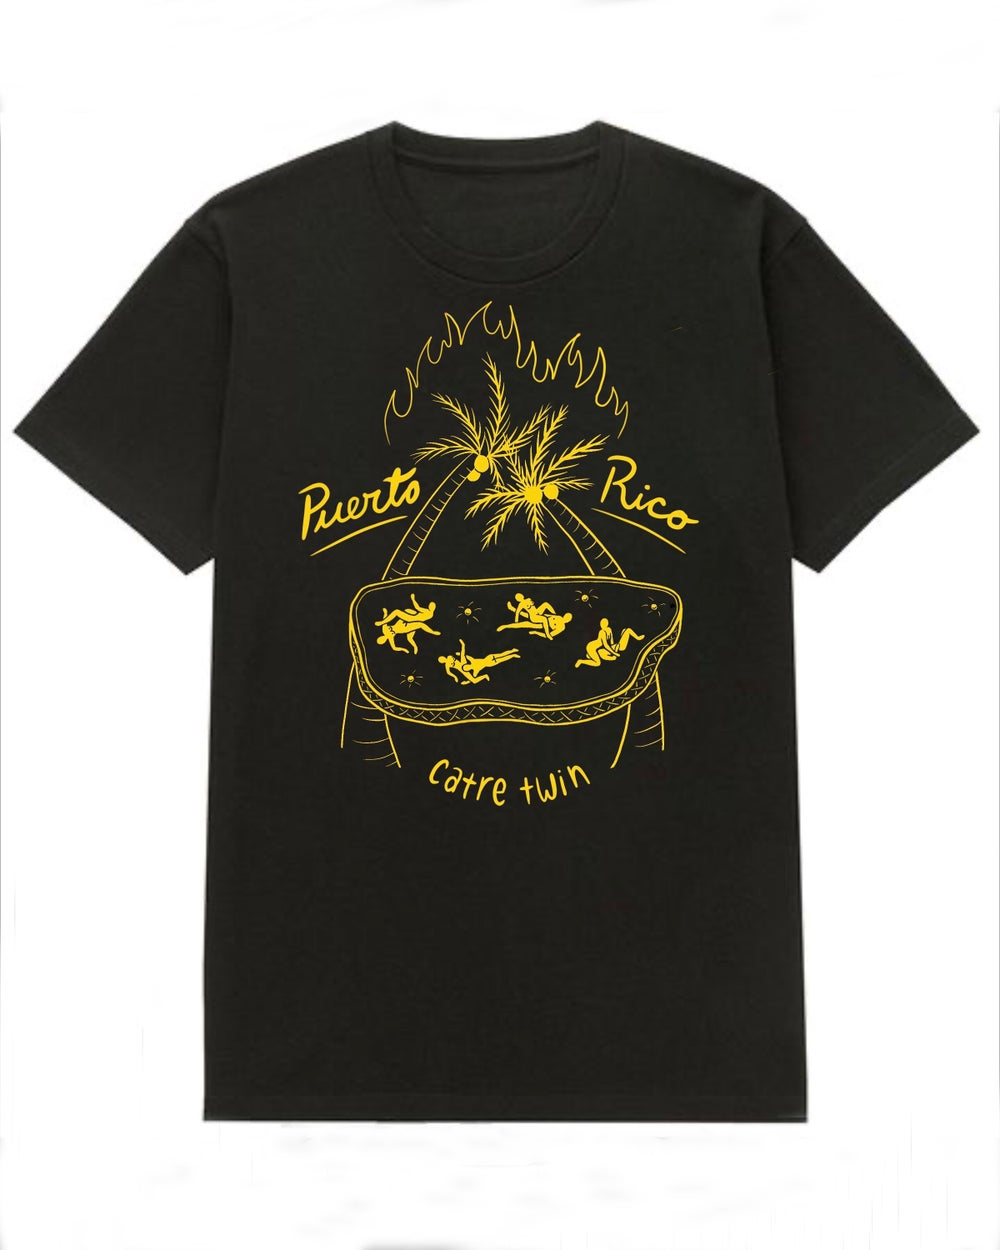 Image of PRE-ORDER: Puerto Rico Catre Twin T-SHIRT